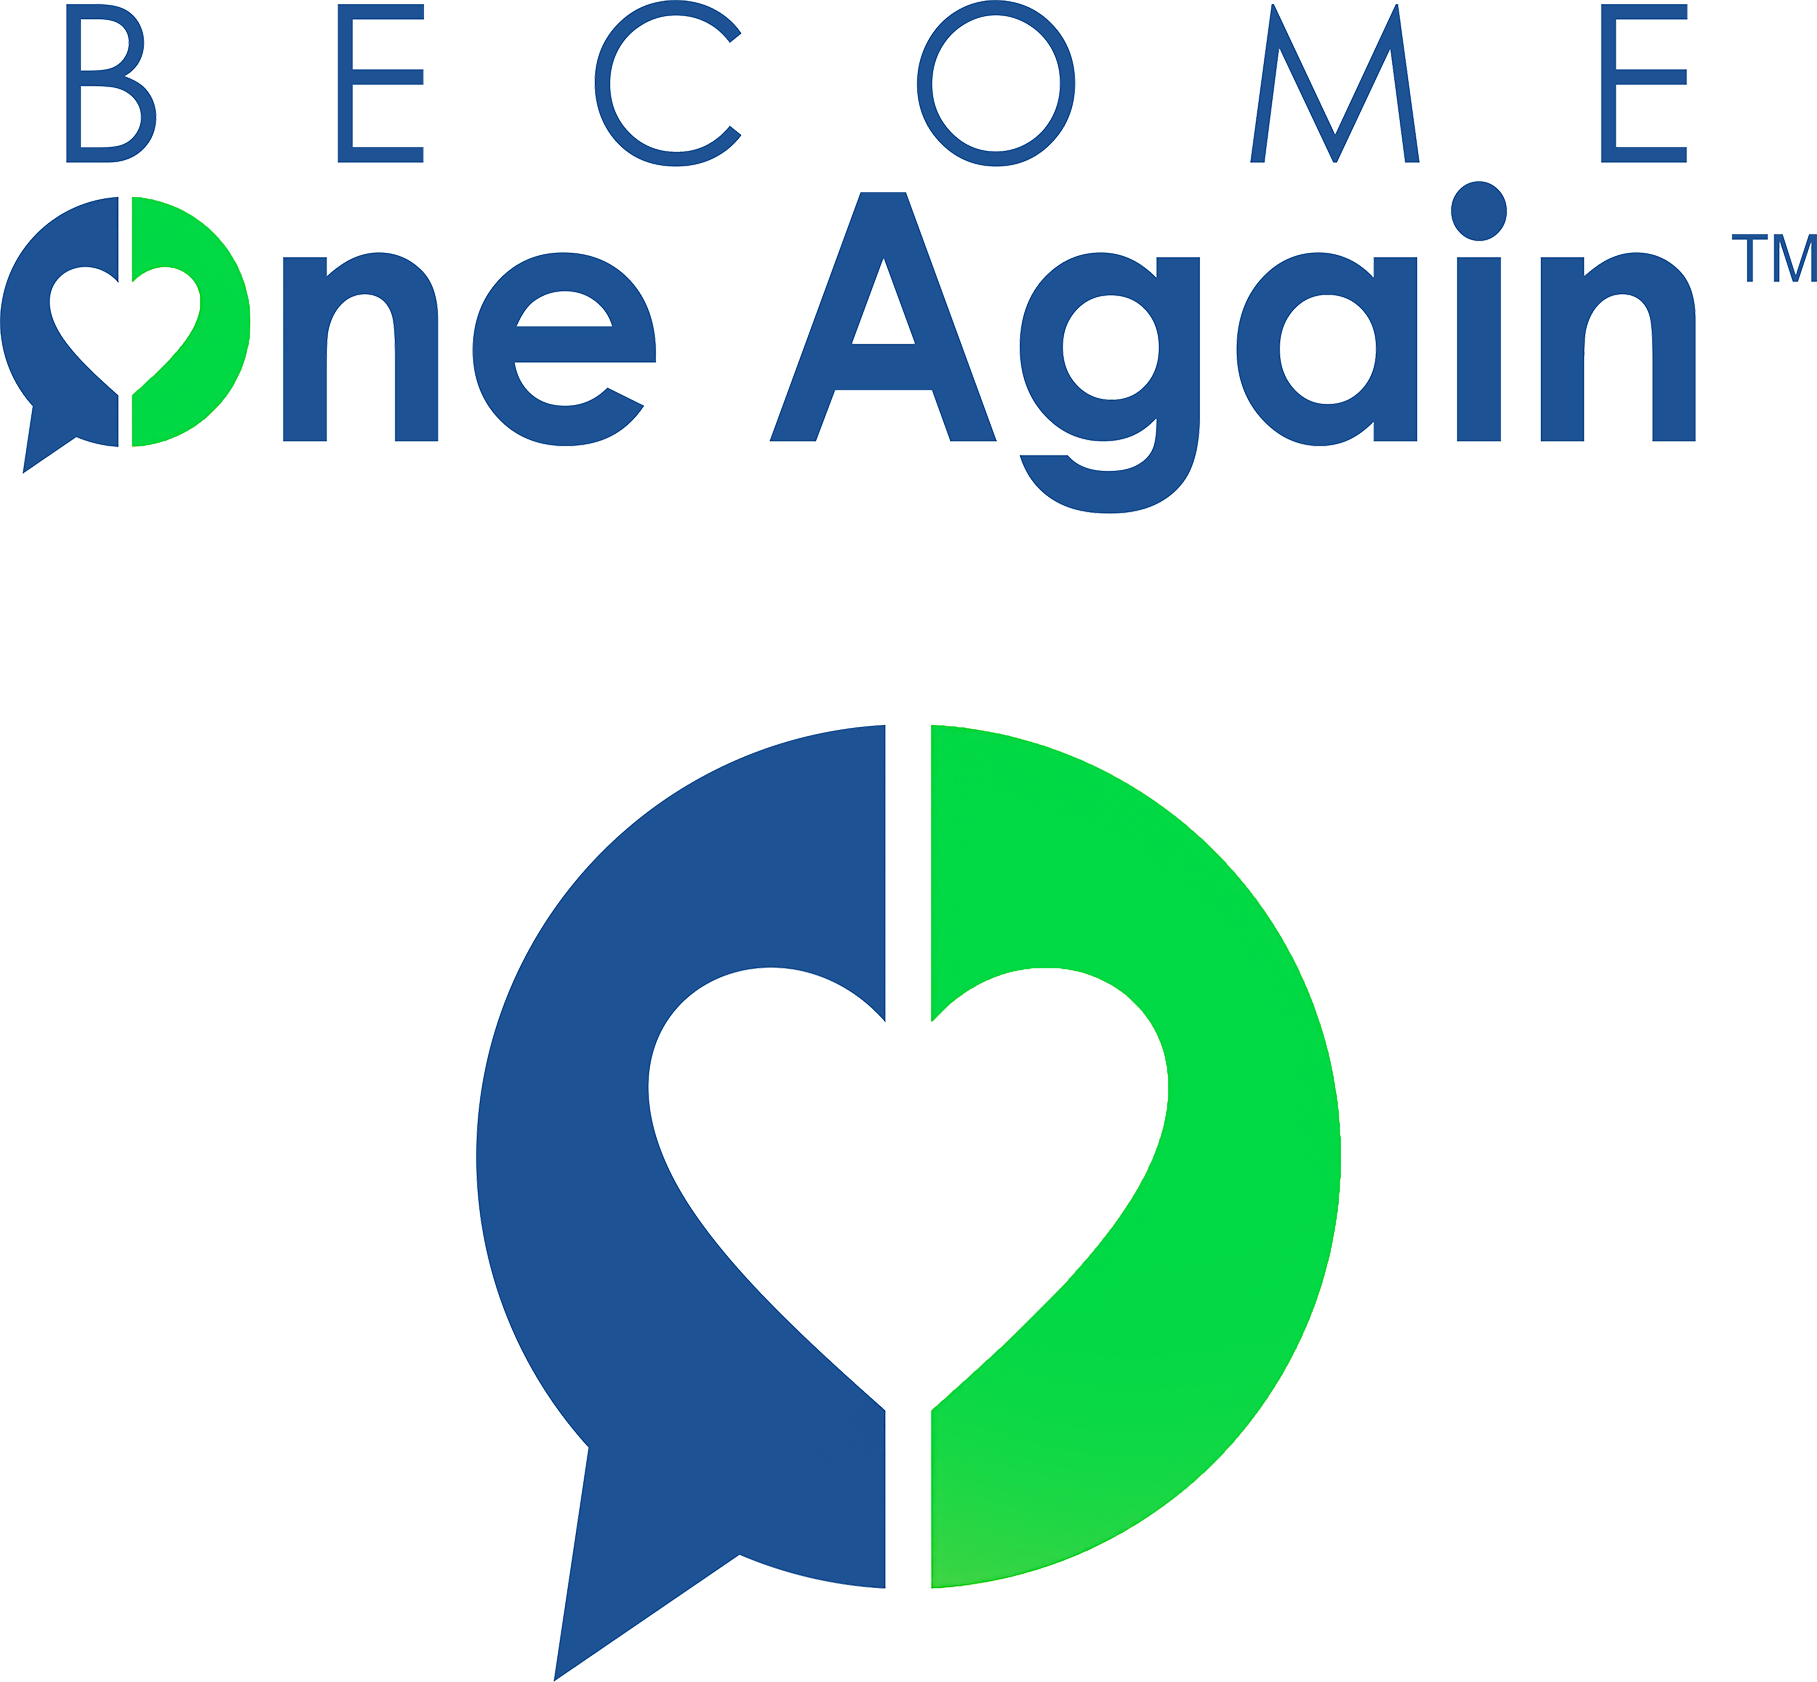 Become One Again